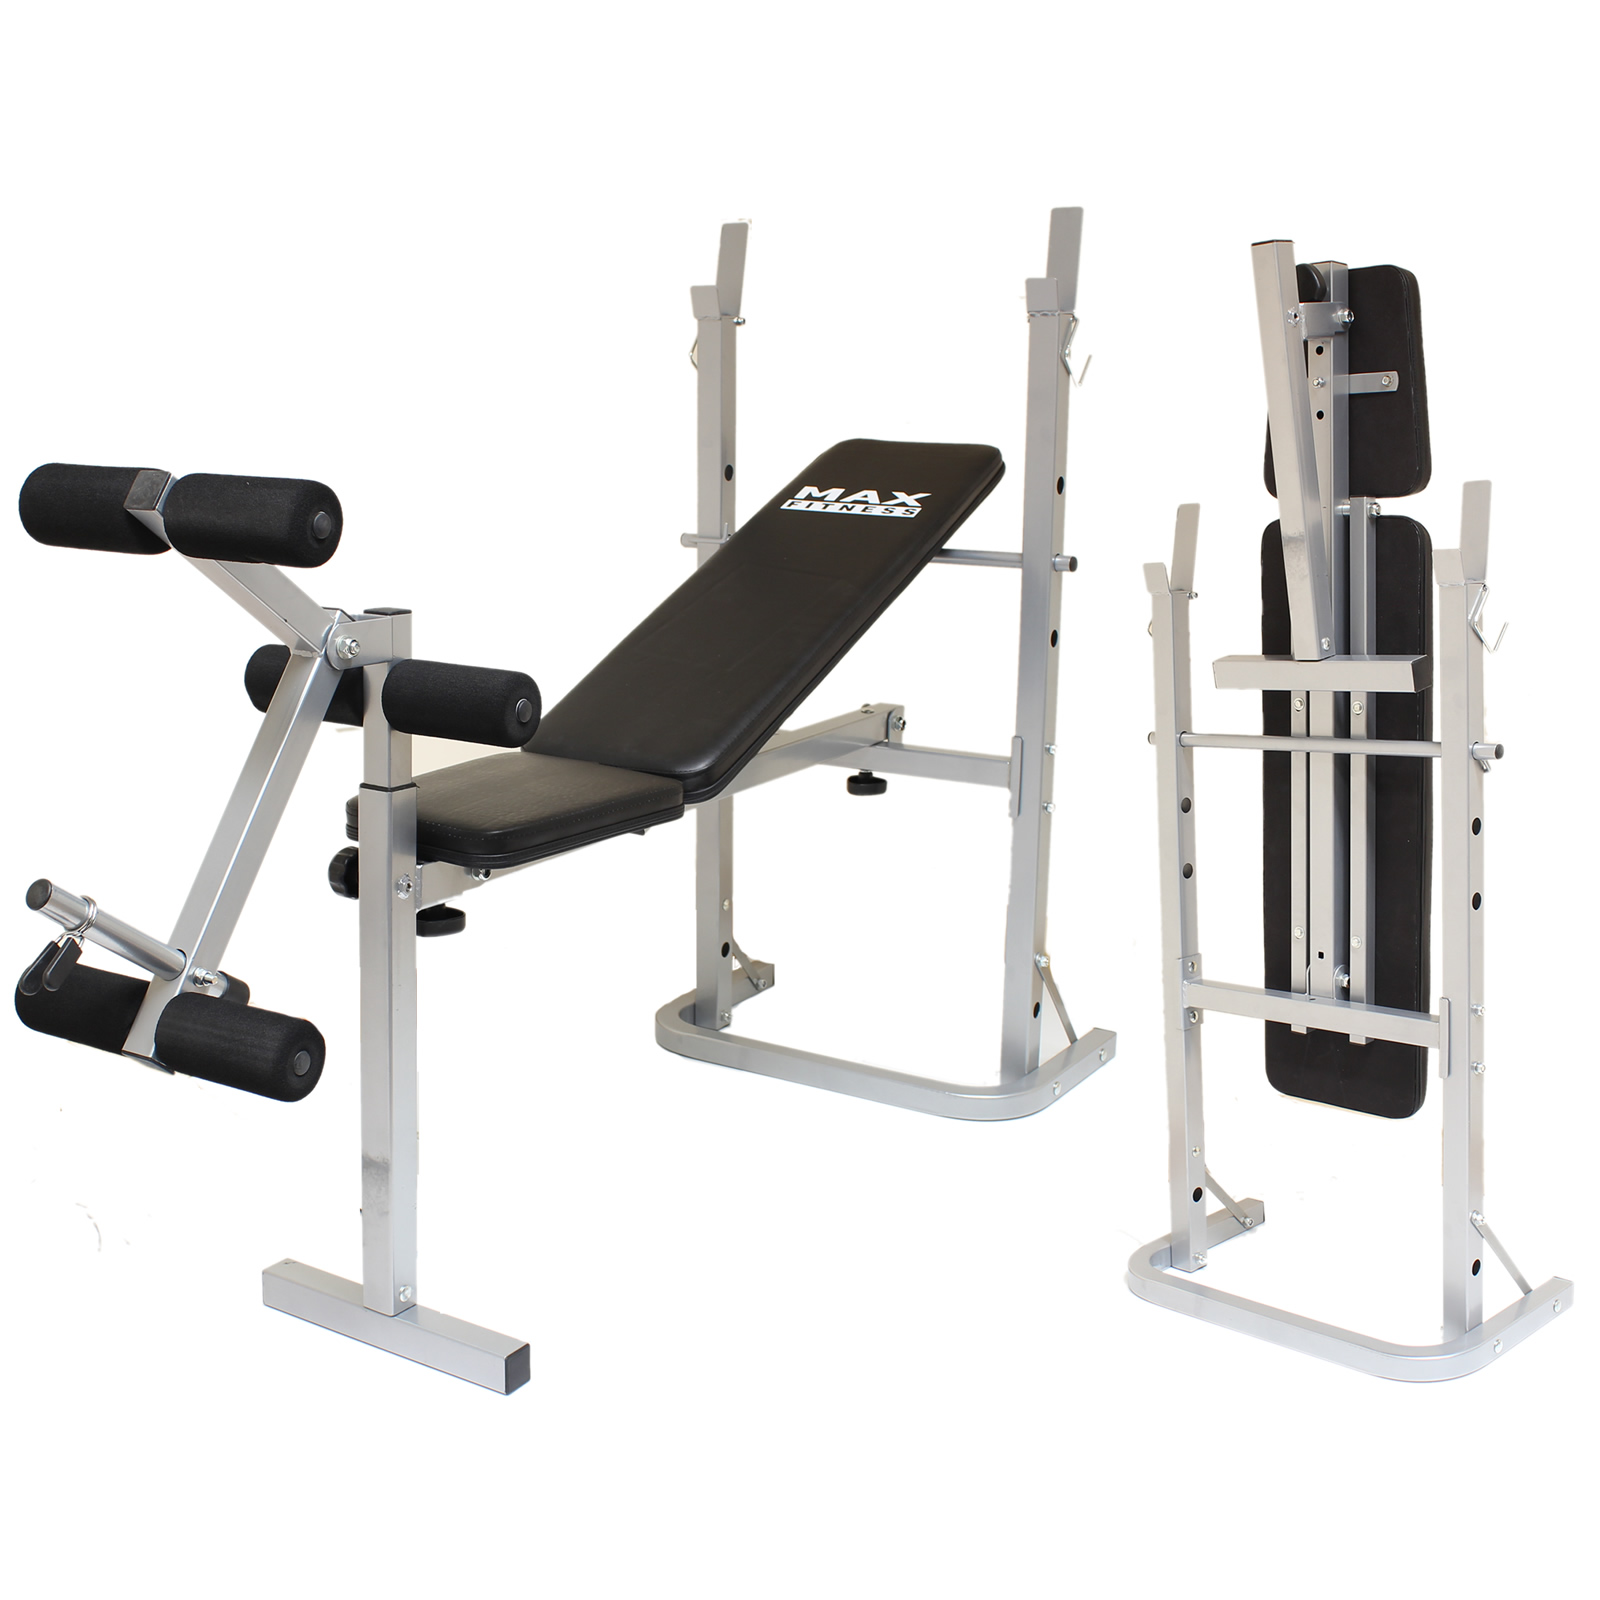 Max Fitness Folding Weight Bench Home Gym Exercise Lift Lifting Chest Press Ab Ebay